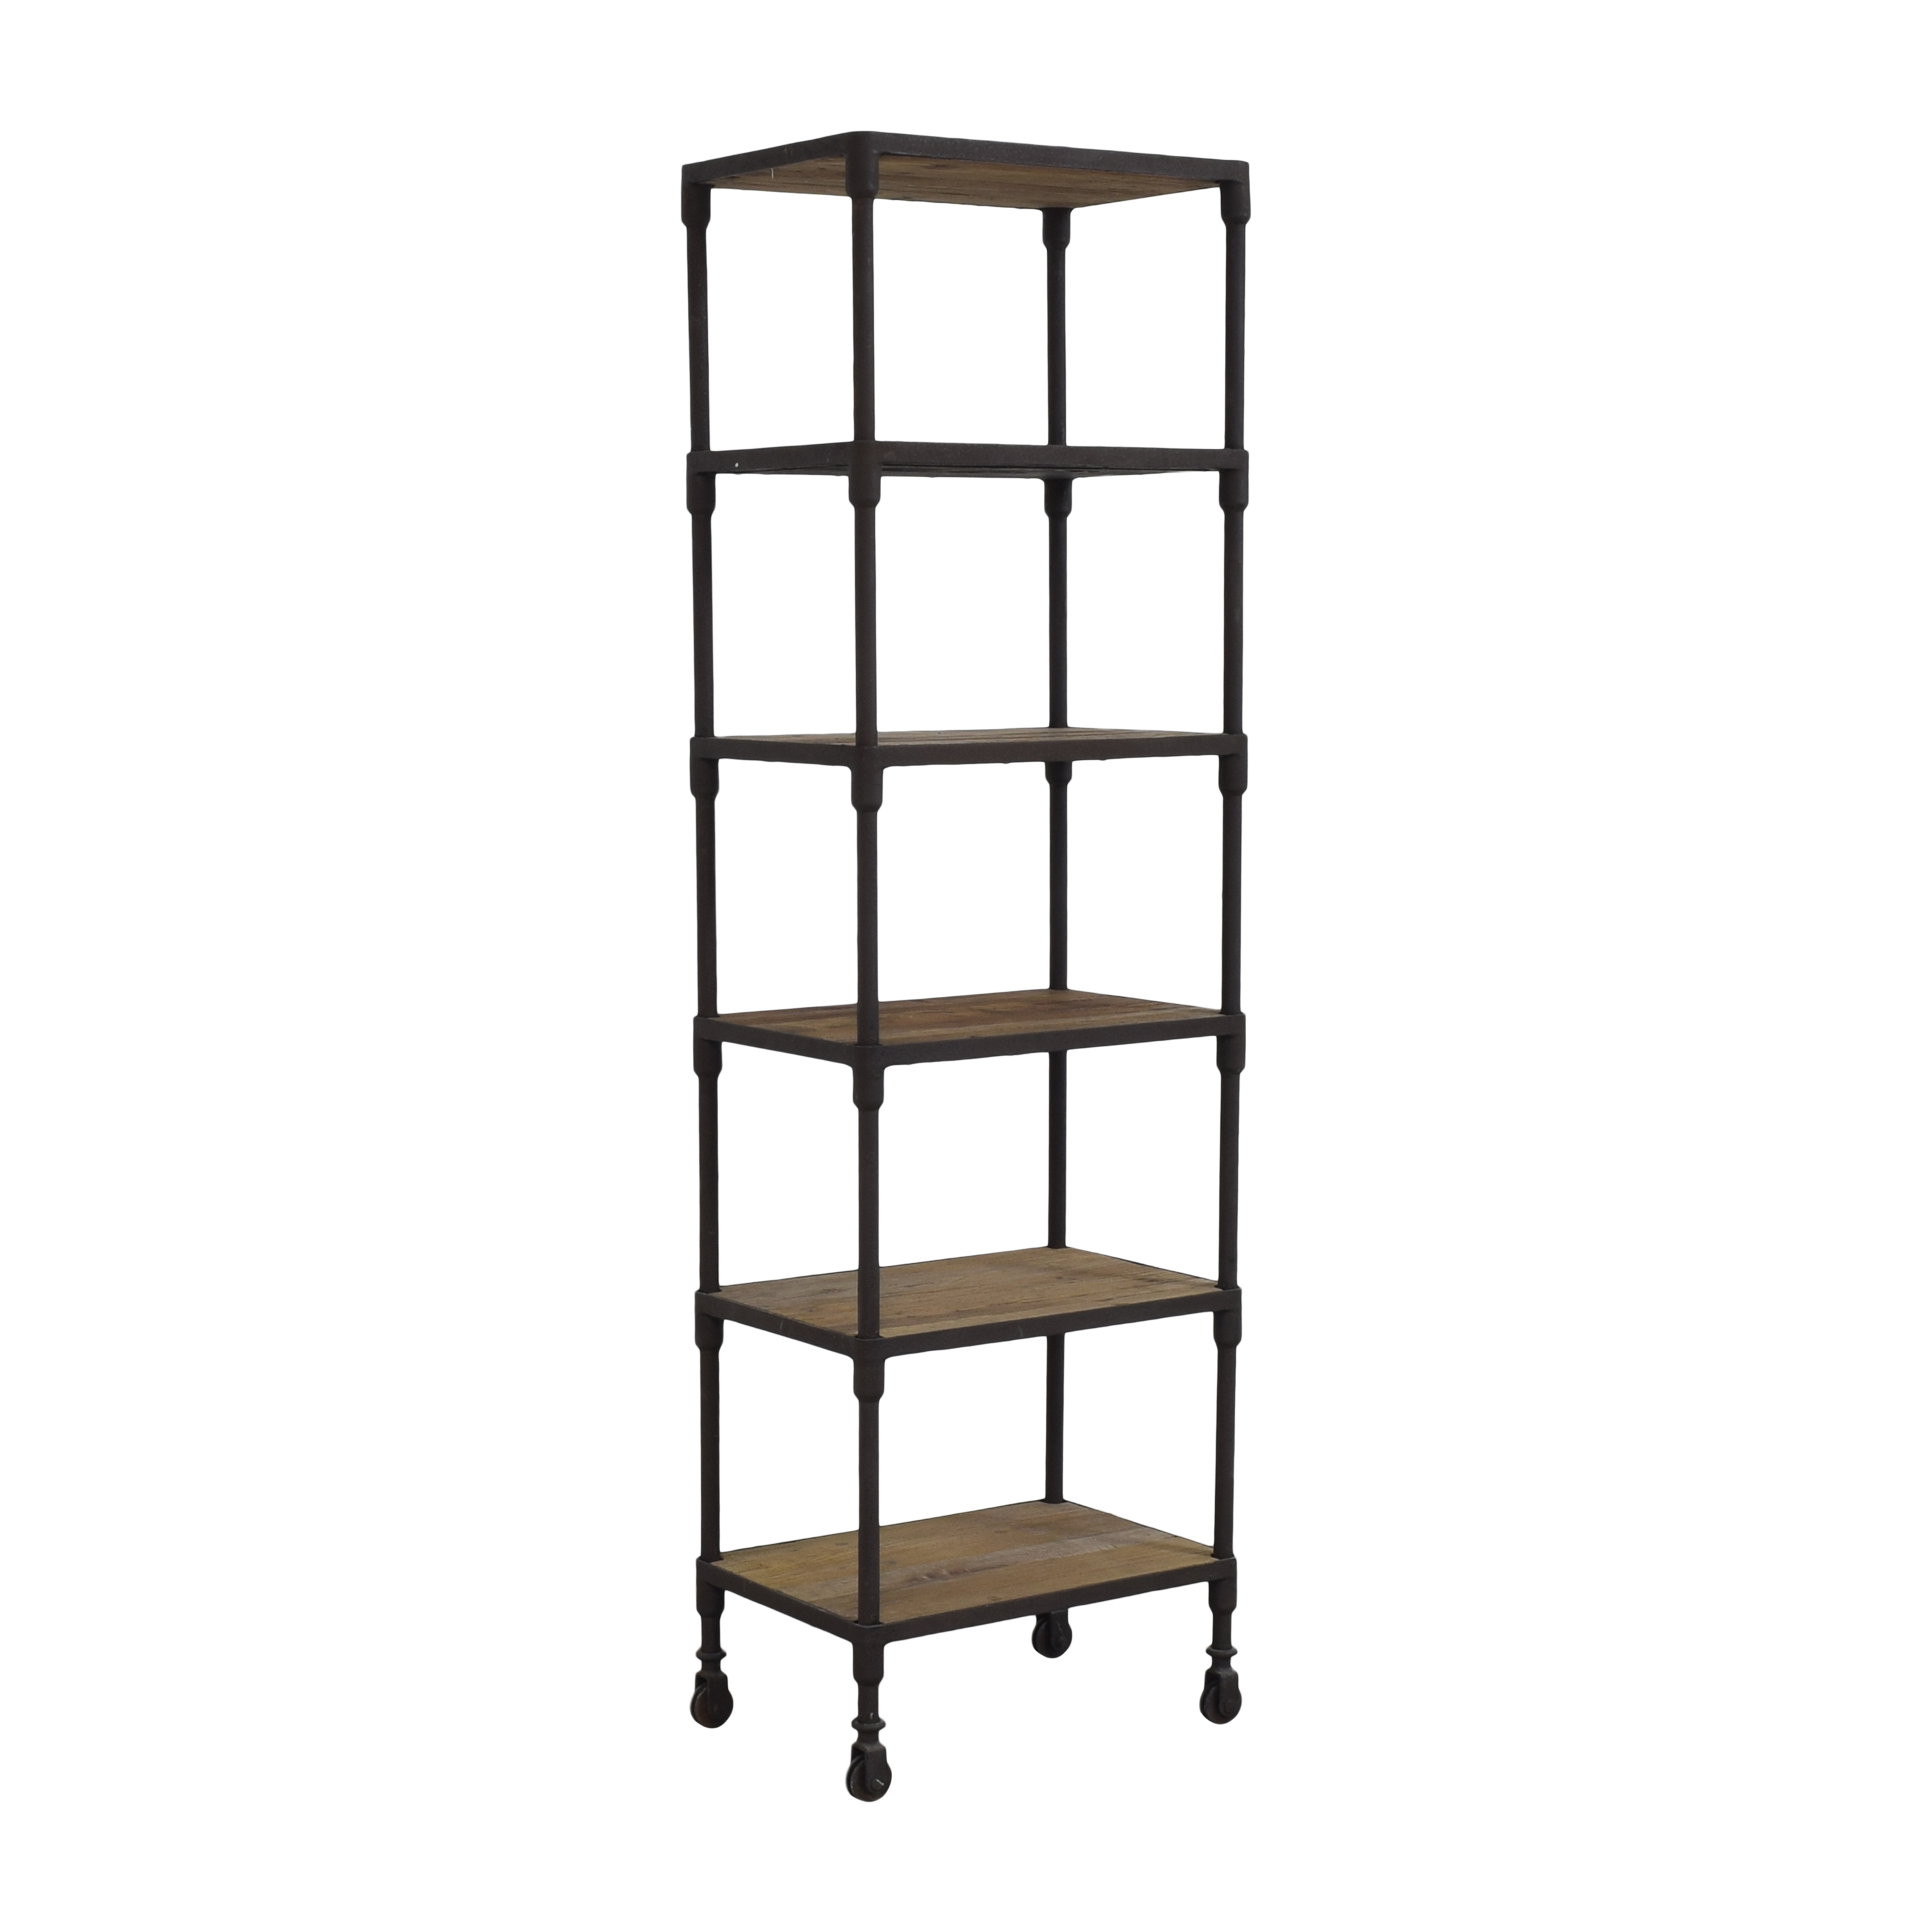 Restoration Hardware Restoration Hardware Dutch Industrial Tower discount